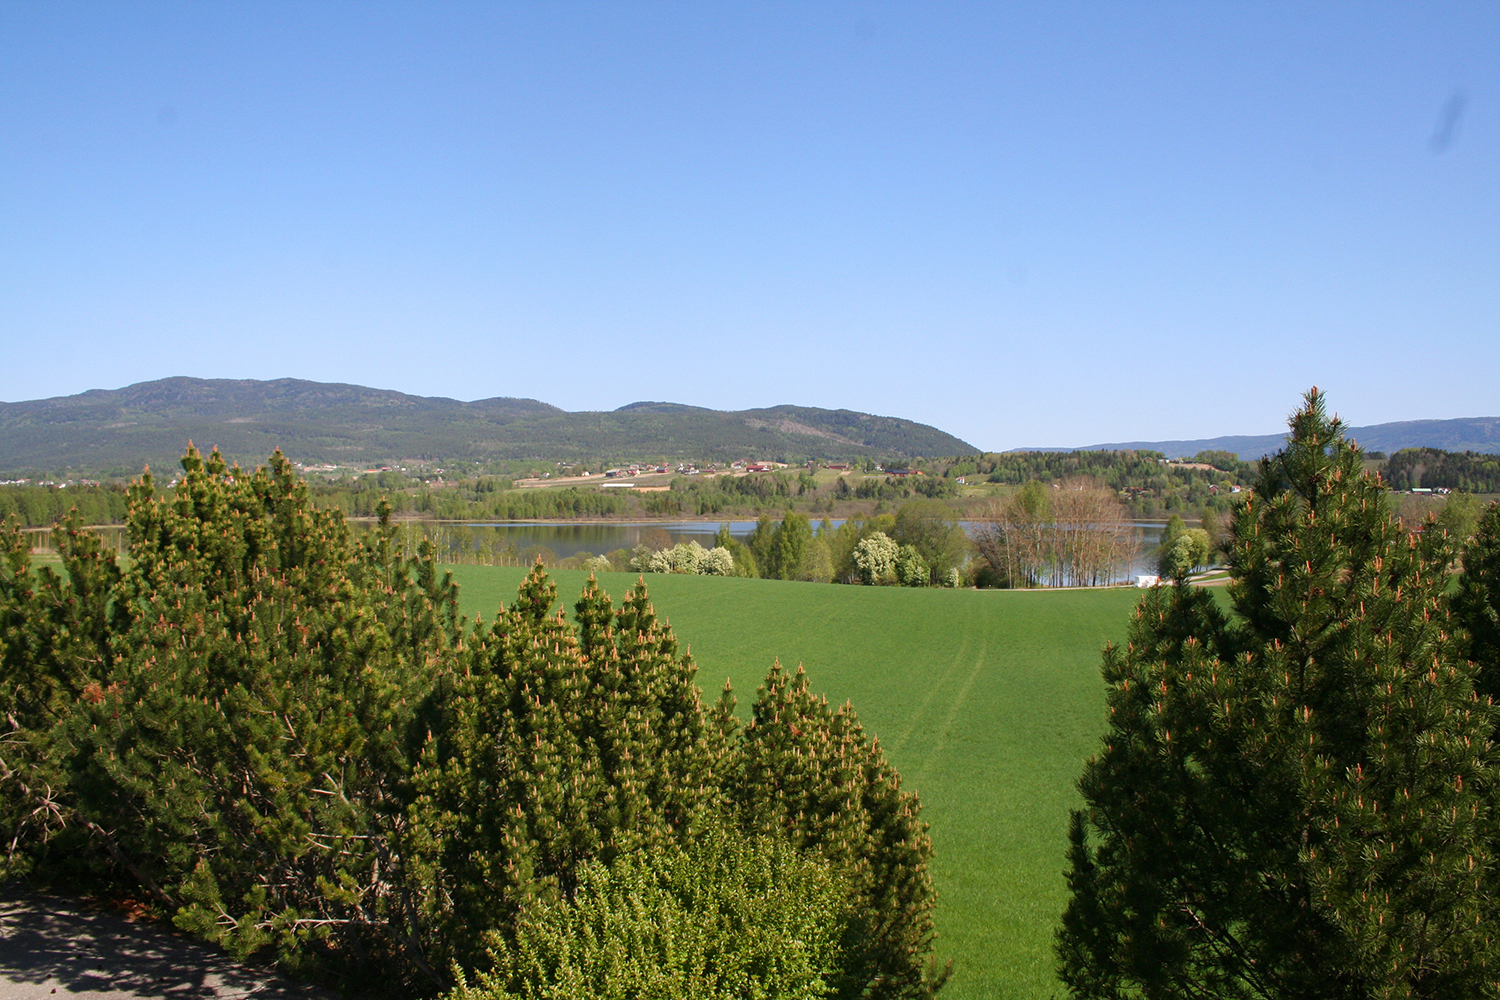 The view from the veranda at Aarnes Cafeteria, © Aarnes Kafeteria